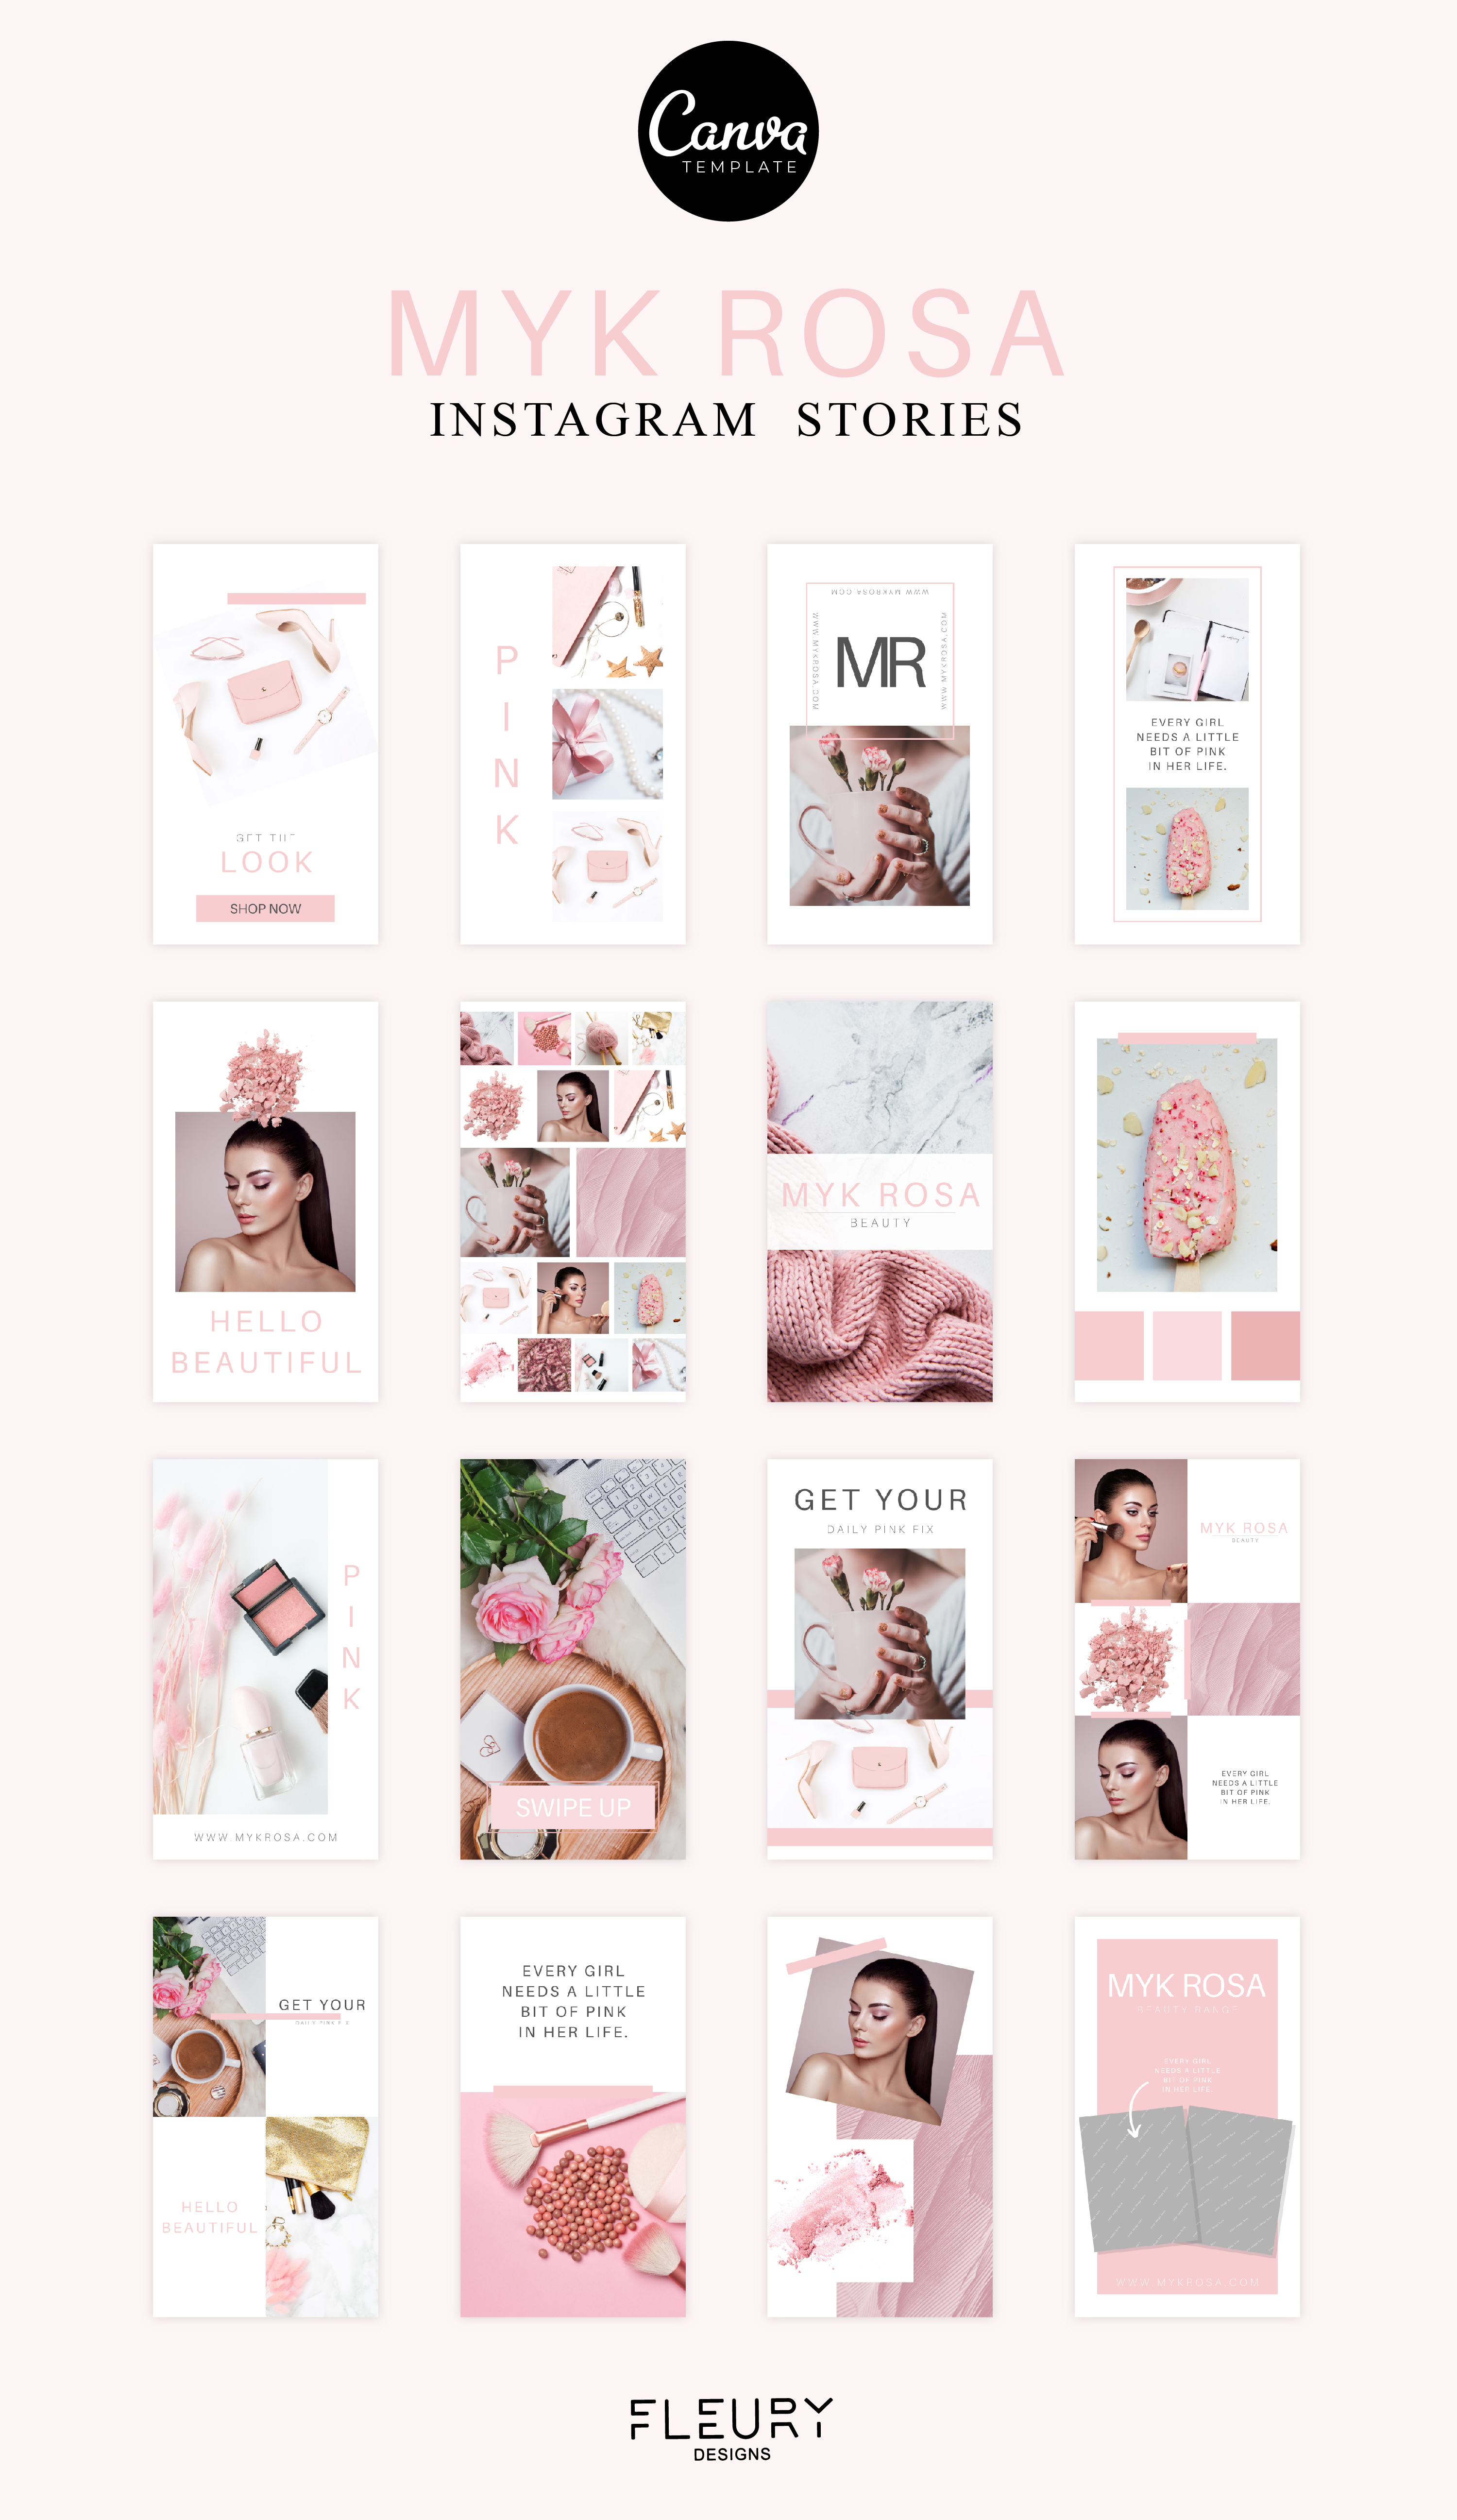 Instagram Story Canva Template - Myk Rosa example image 4